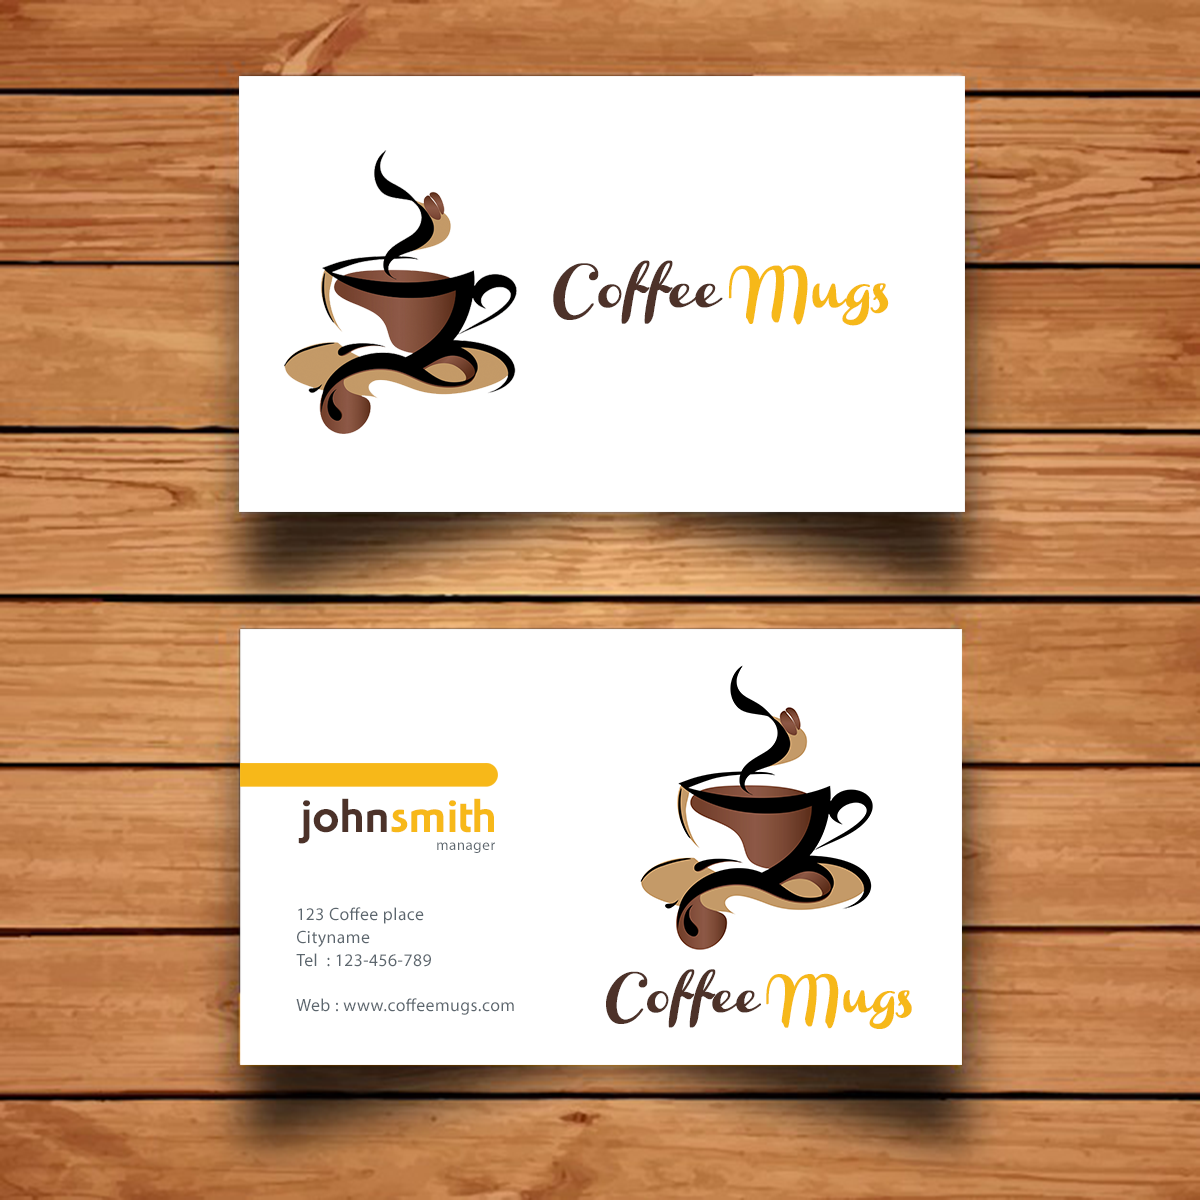 Coffee Mugs Visiting Card Design